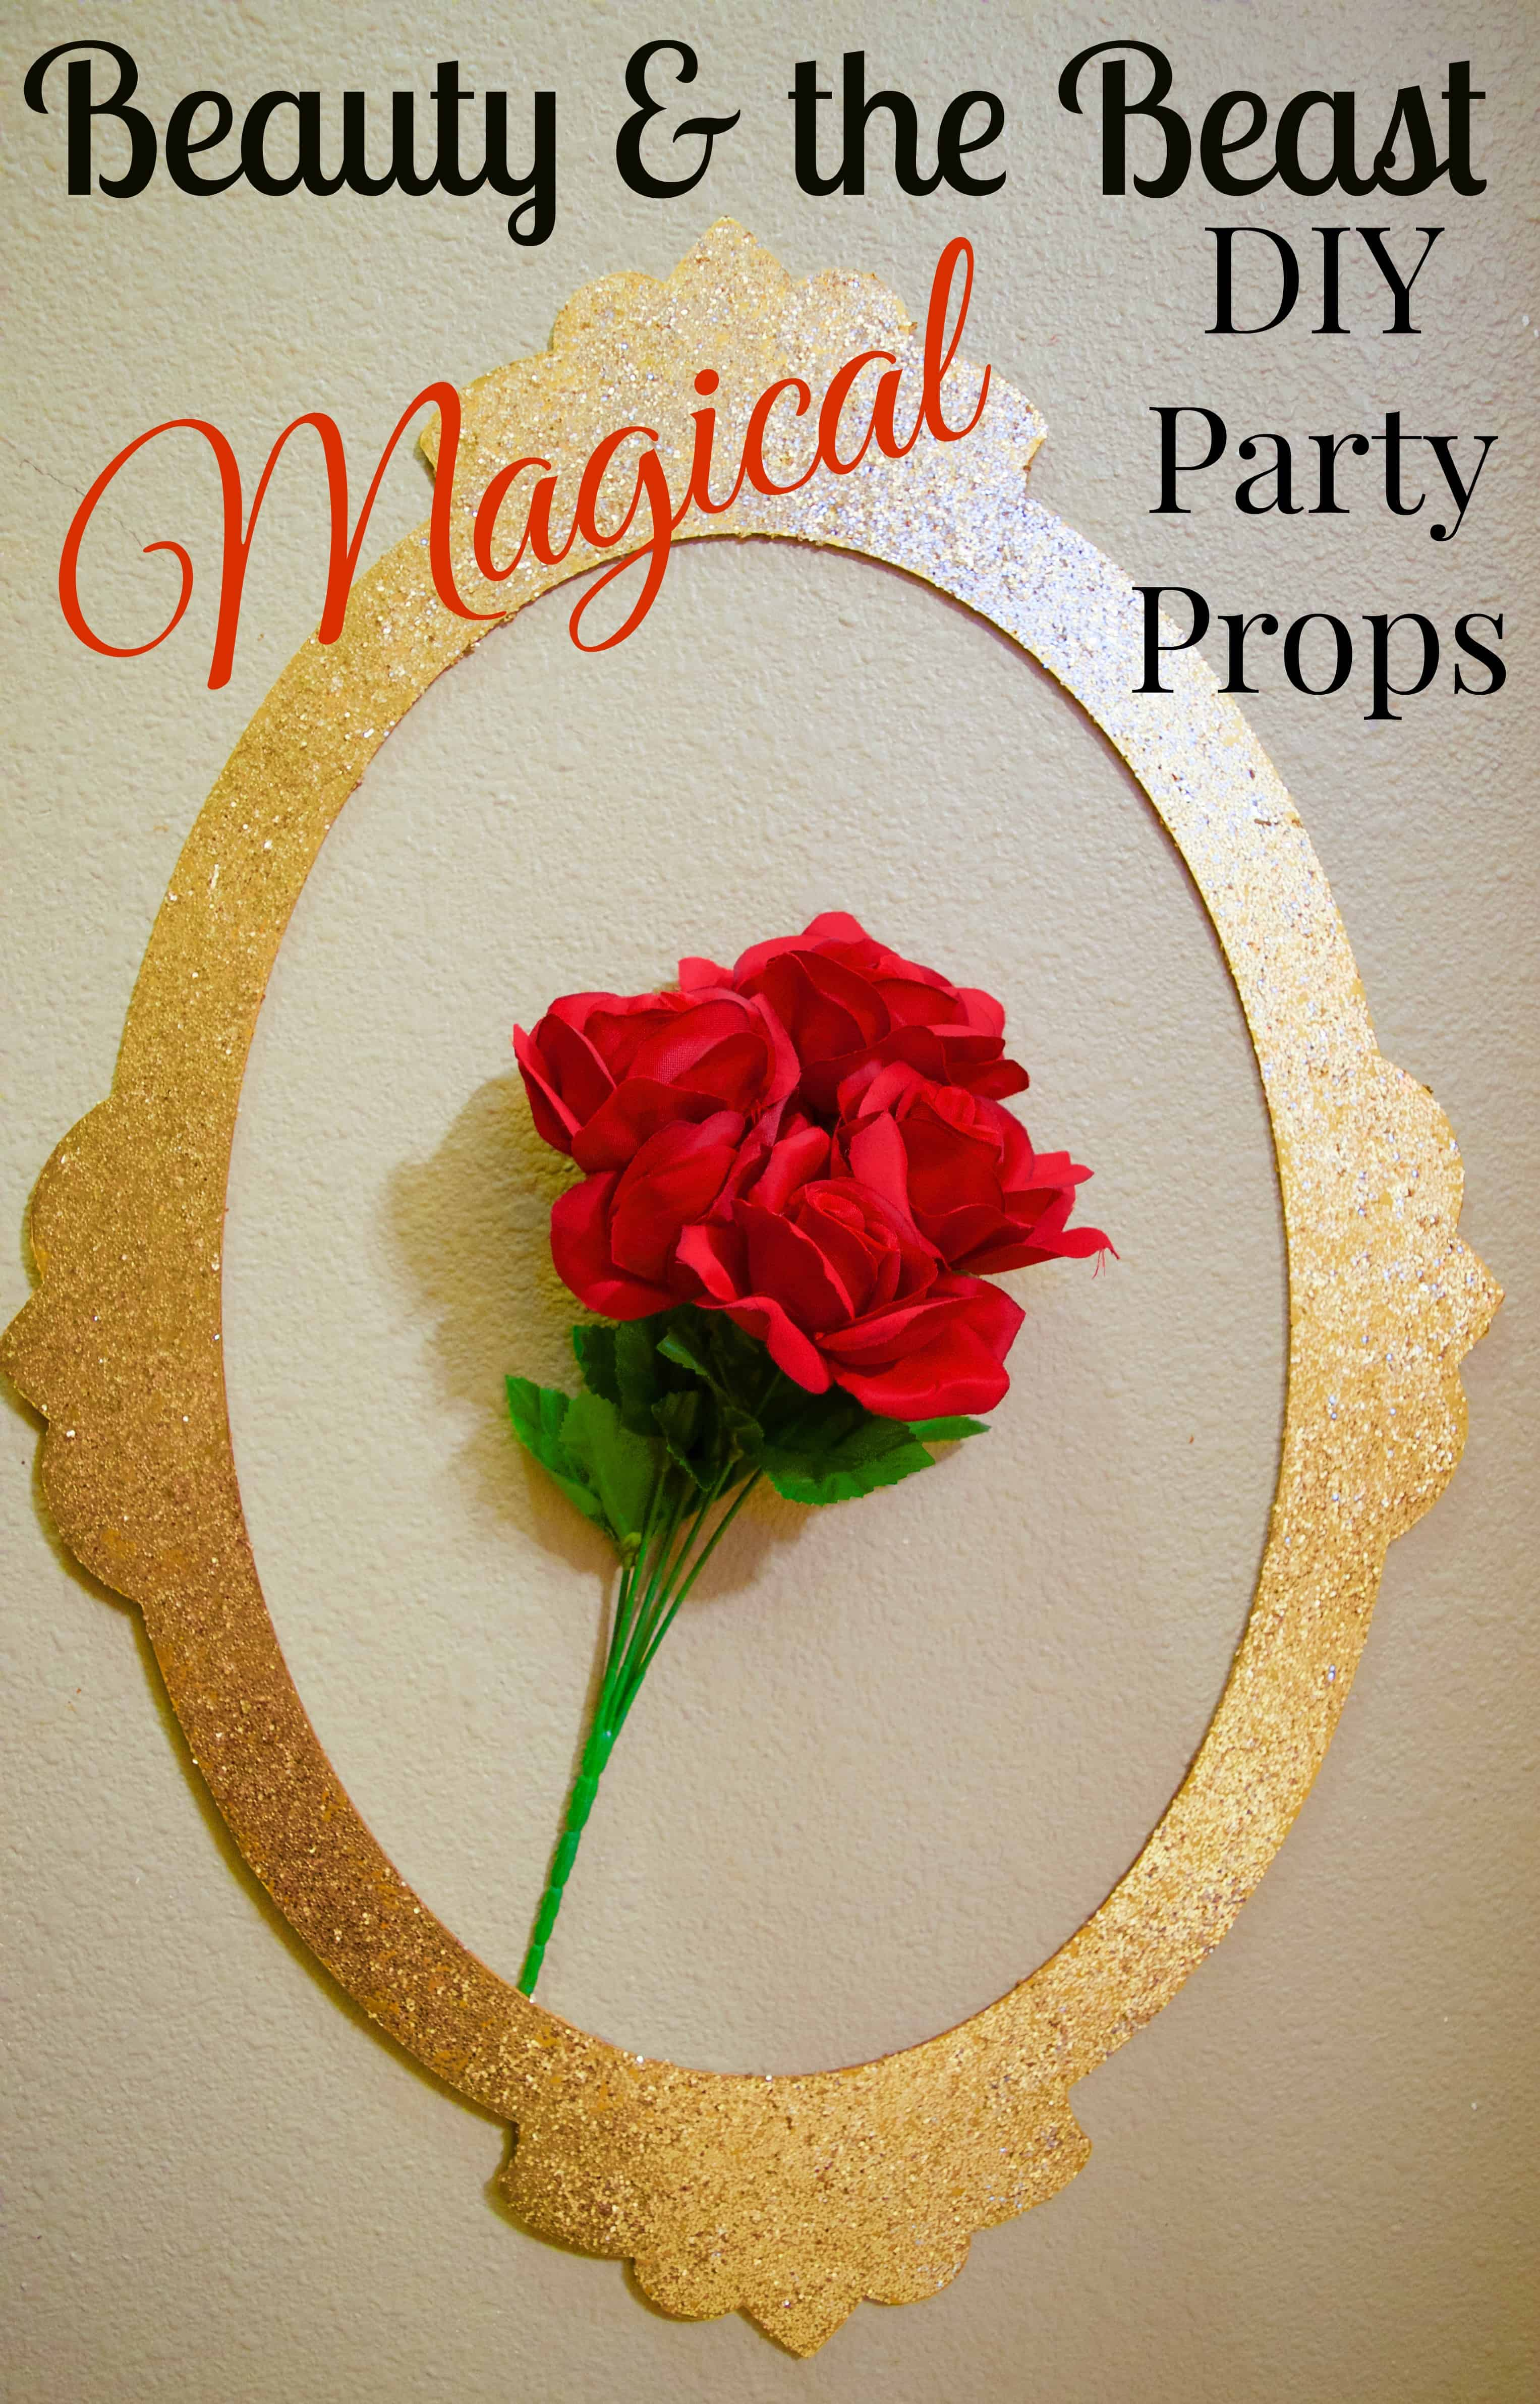 Magical DIY Beauty & the Beast Party Prop Supplies & Wall Decor